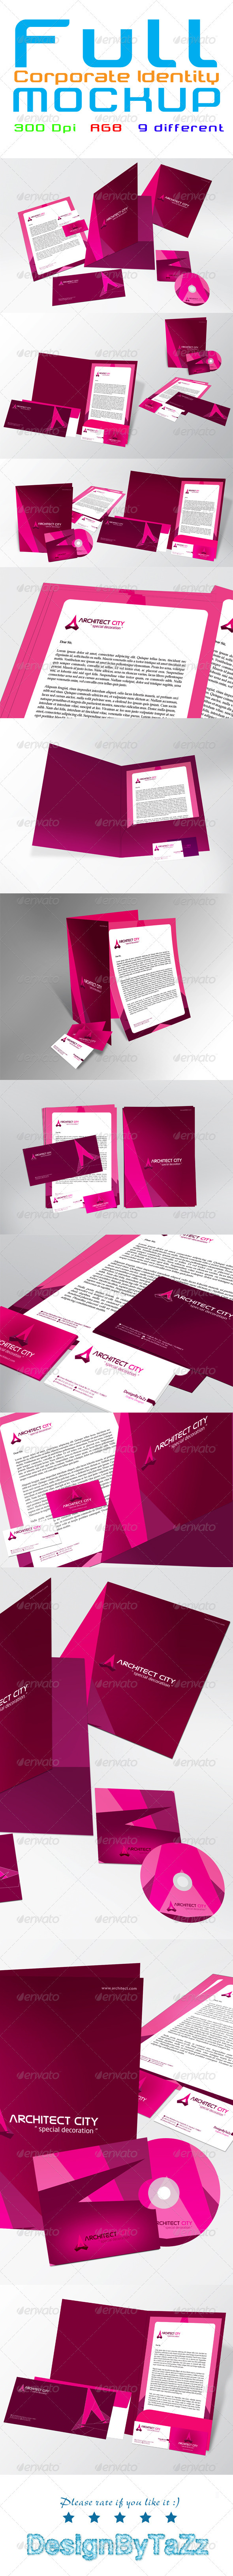 Full Corporate Identity Package - Stationery Print